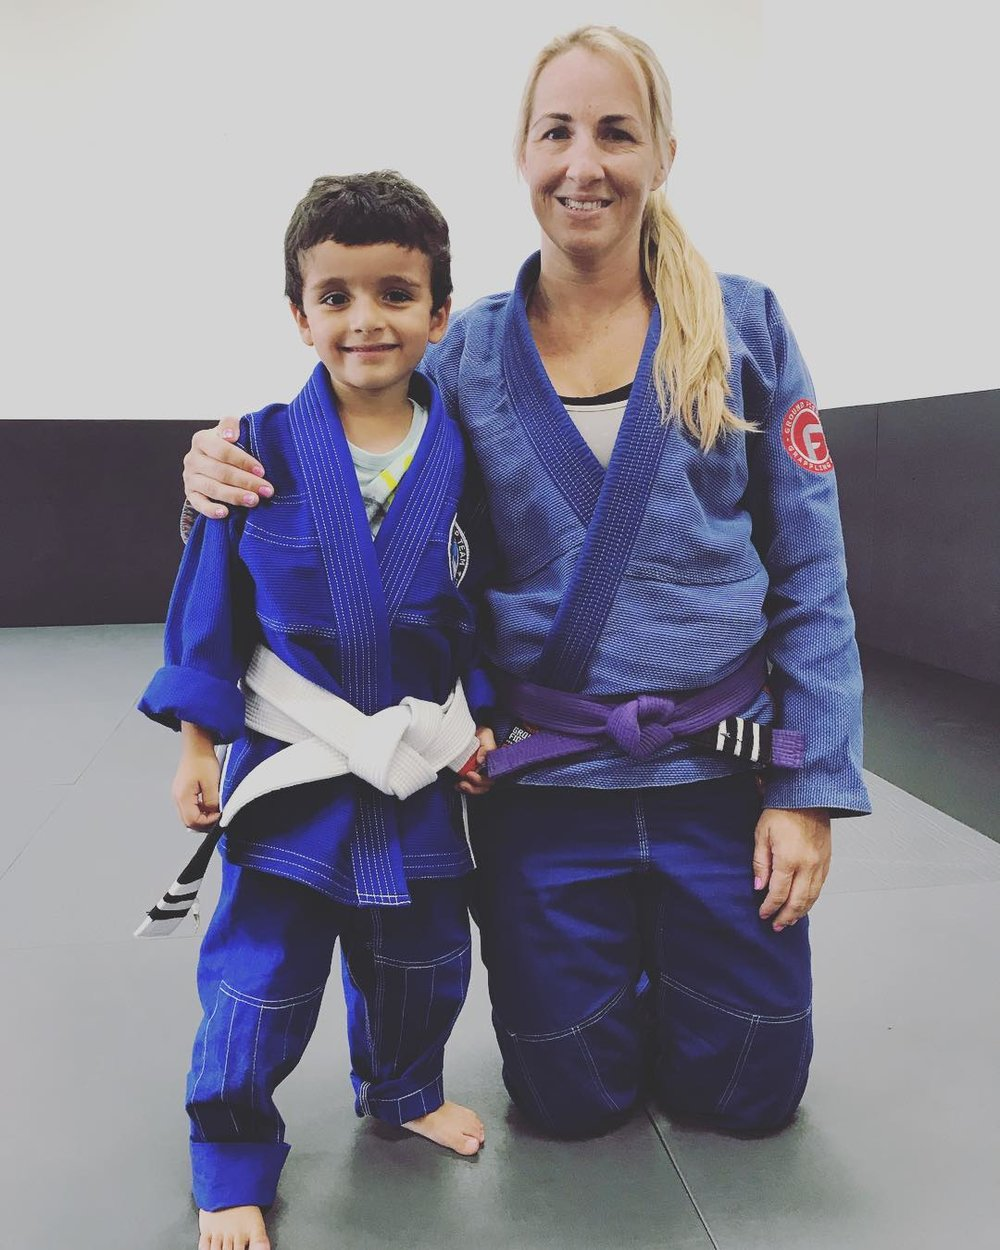 well deserved jiu jitsu promotion in corona